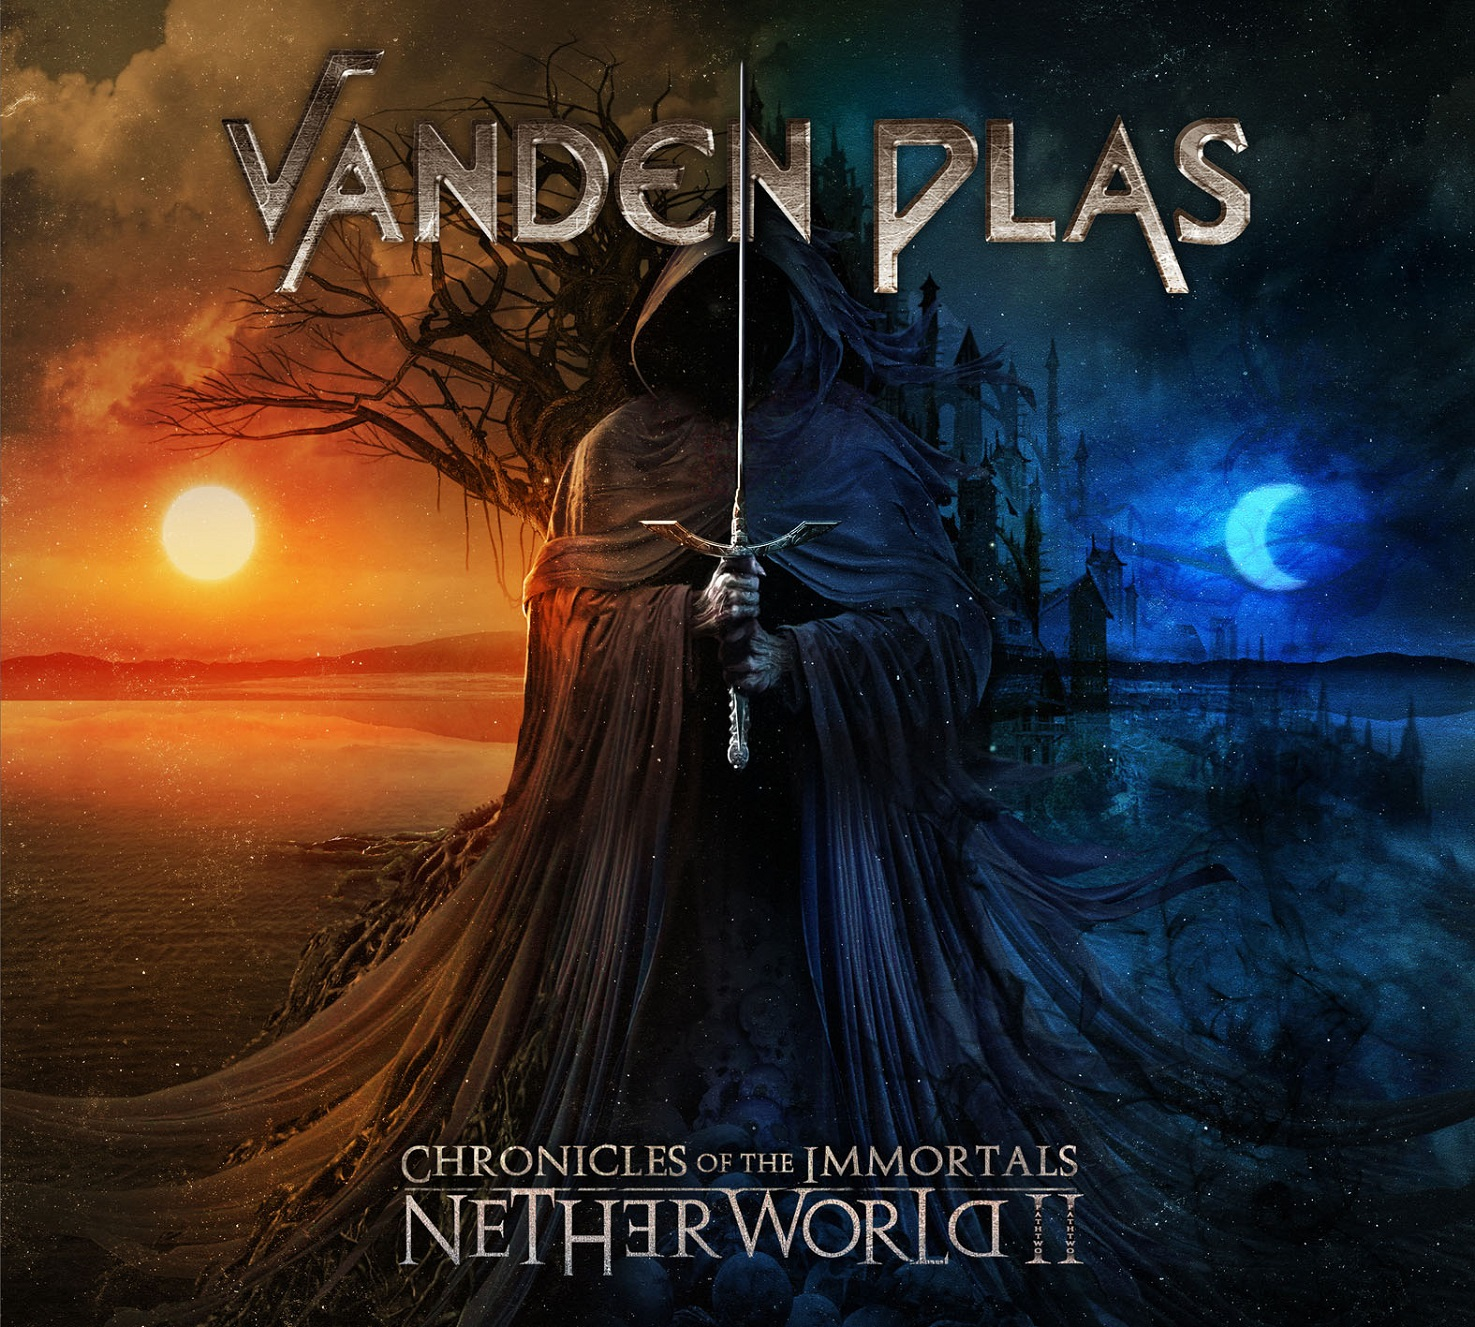 Vanden Plas – Chronicles of the Immortals: Netherworld Parts I and II